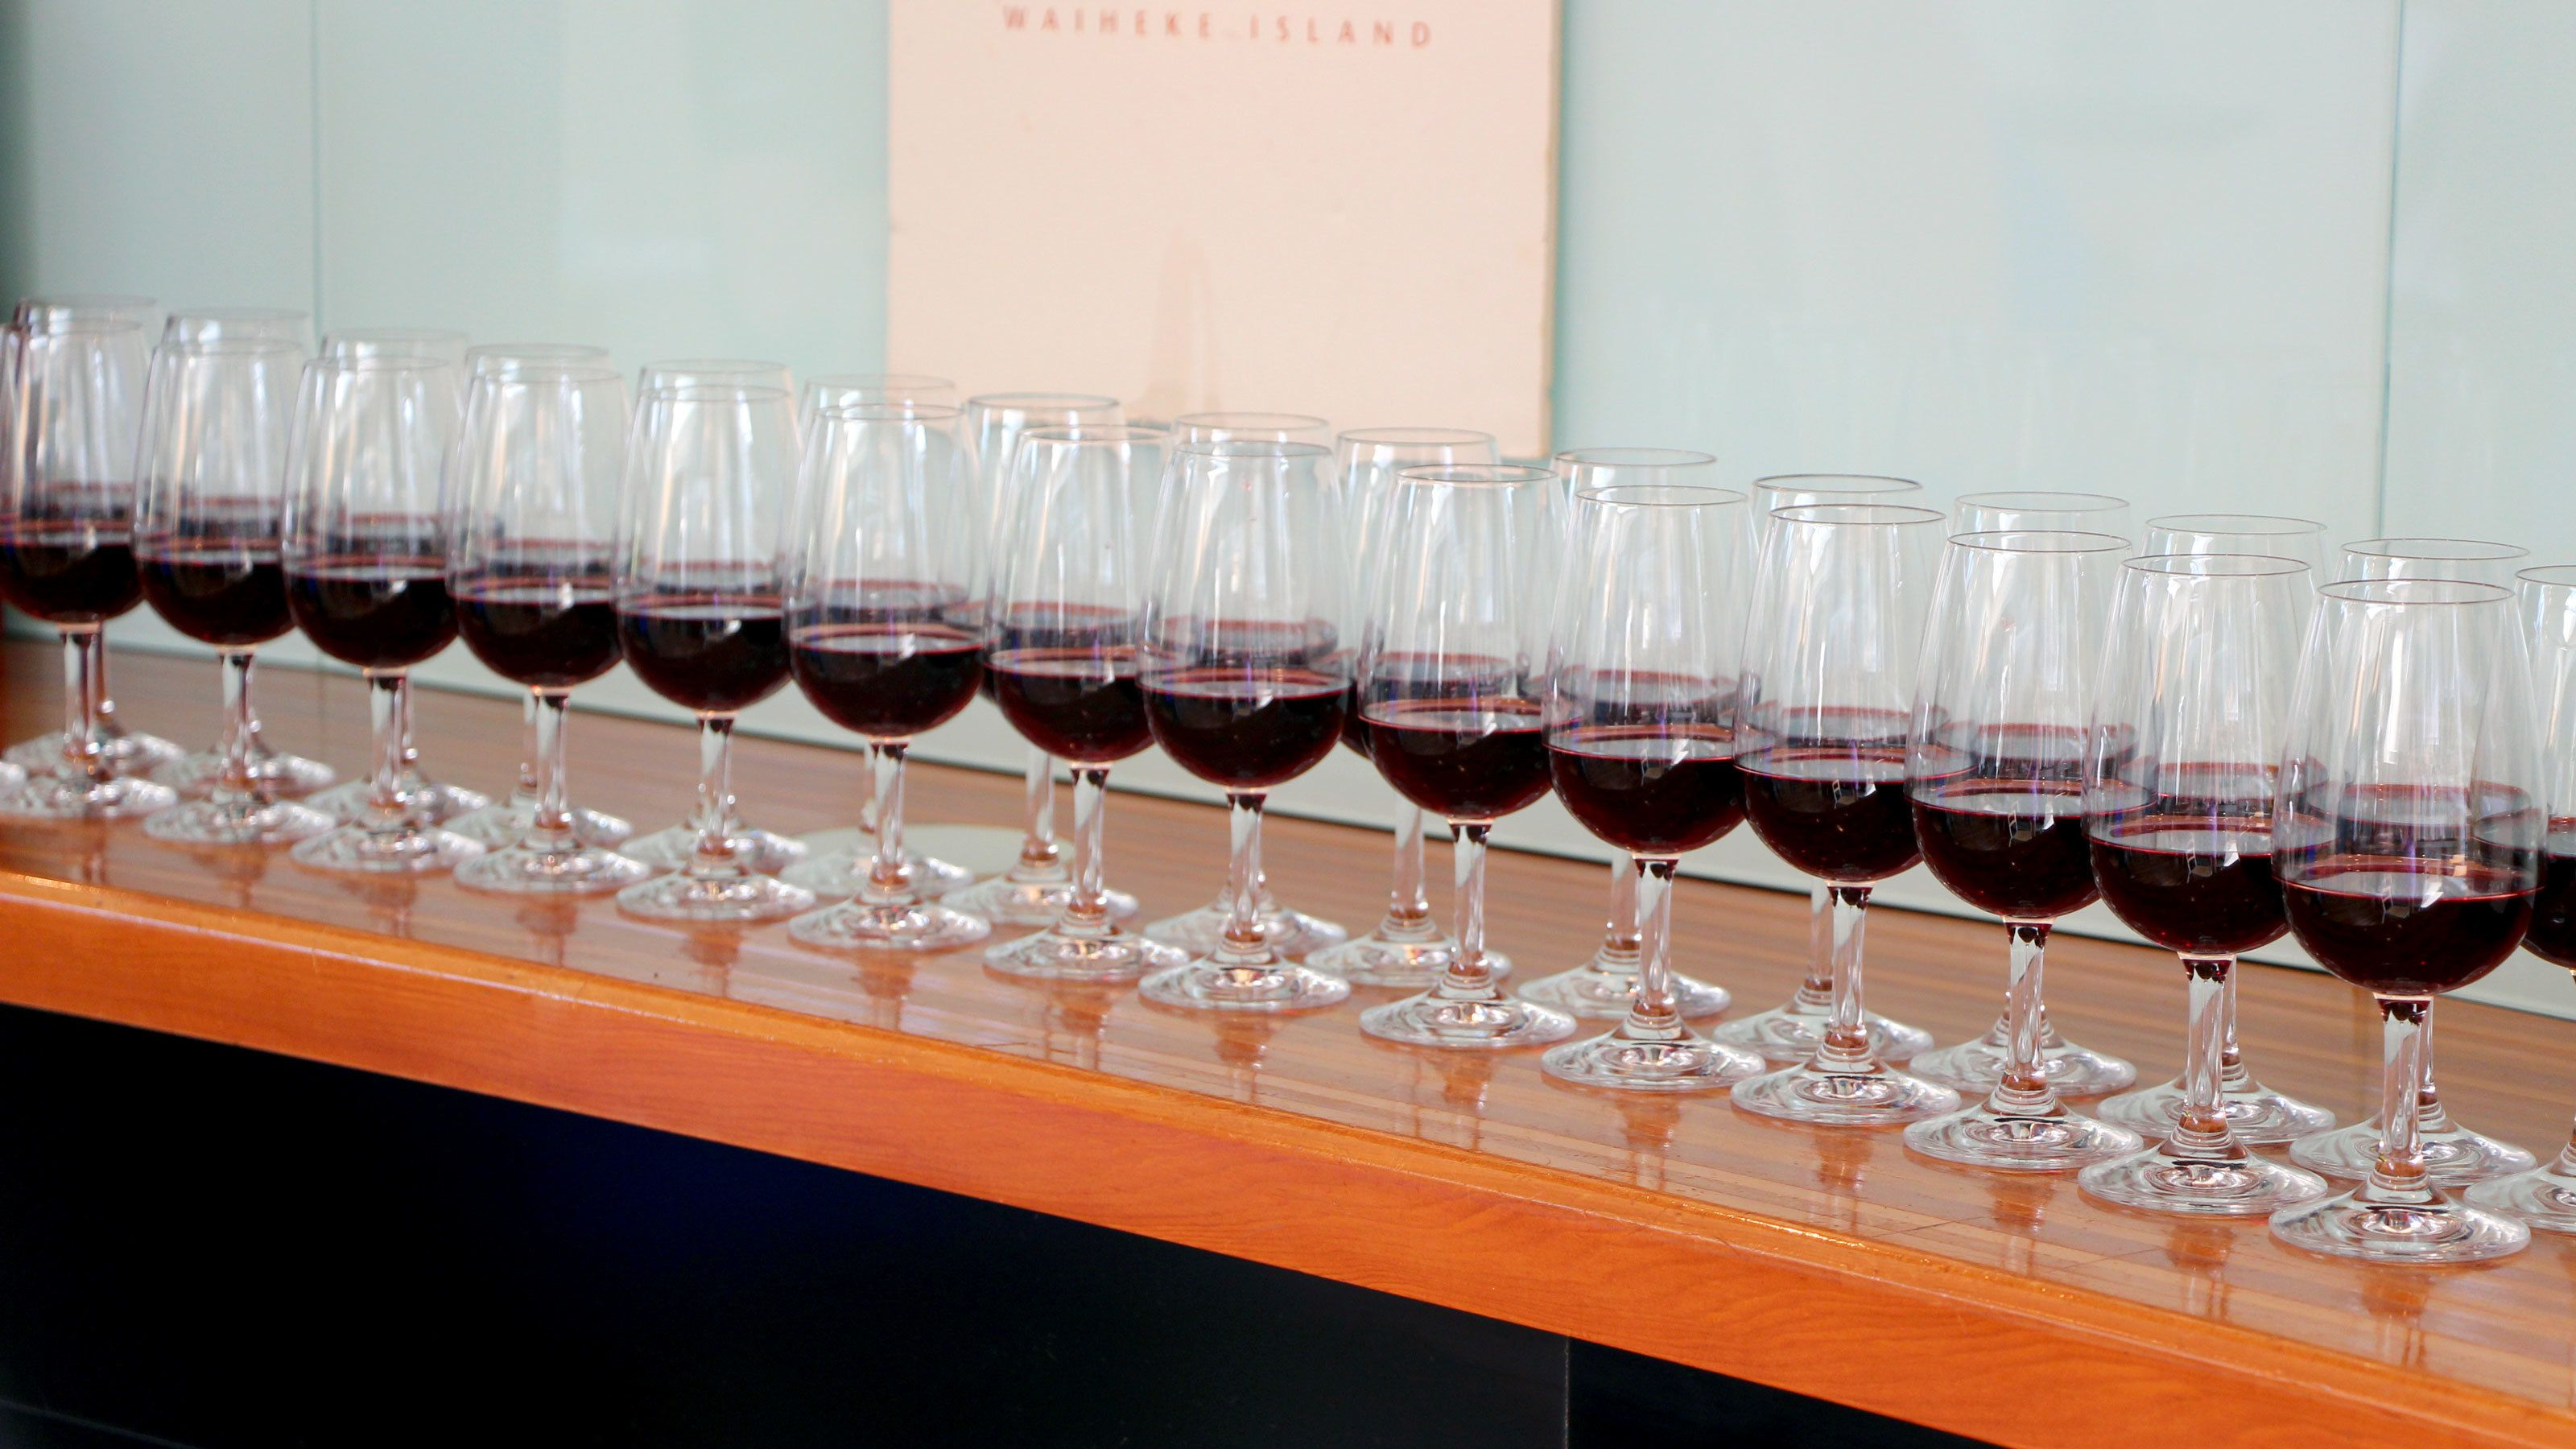 Row of wine glasses with red wine at a vineyard on Waiheka Island